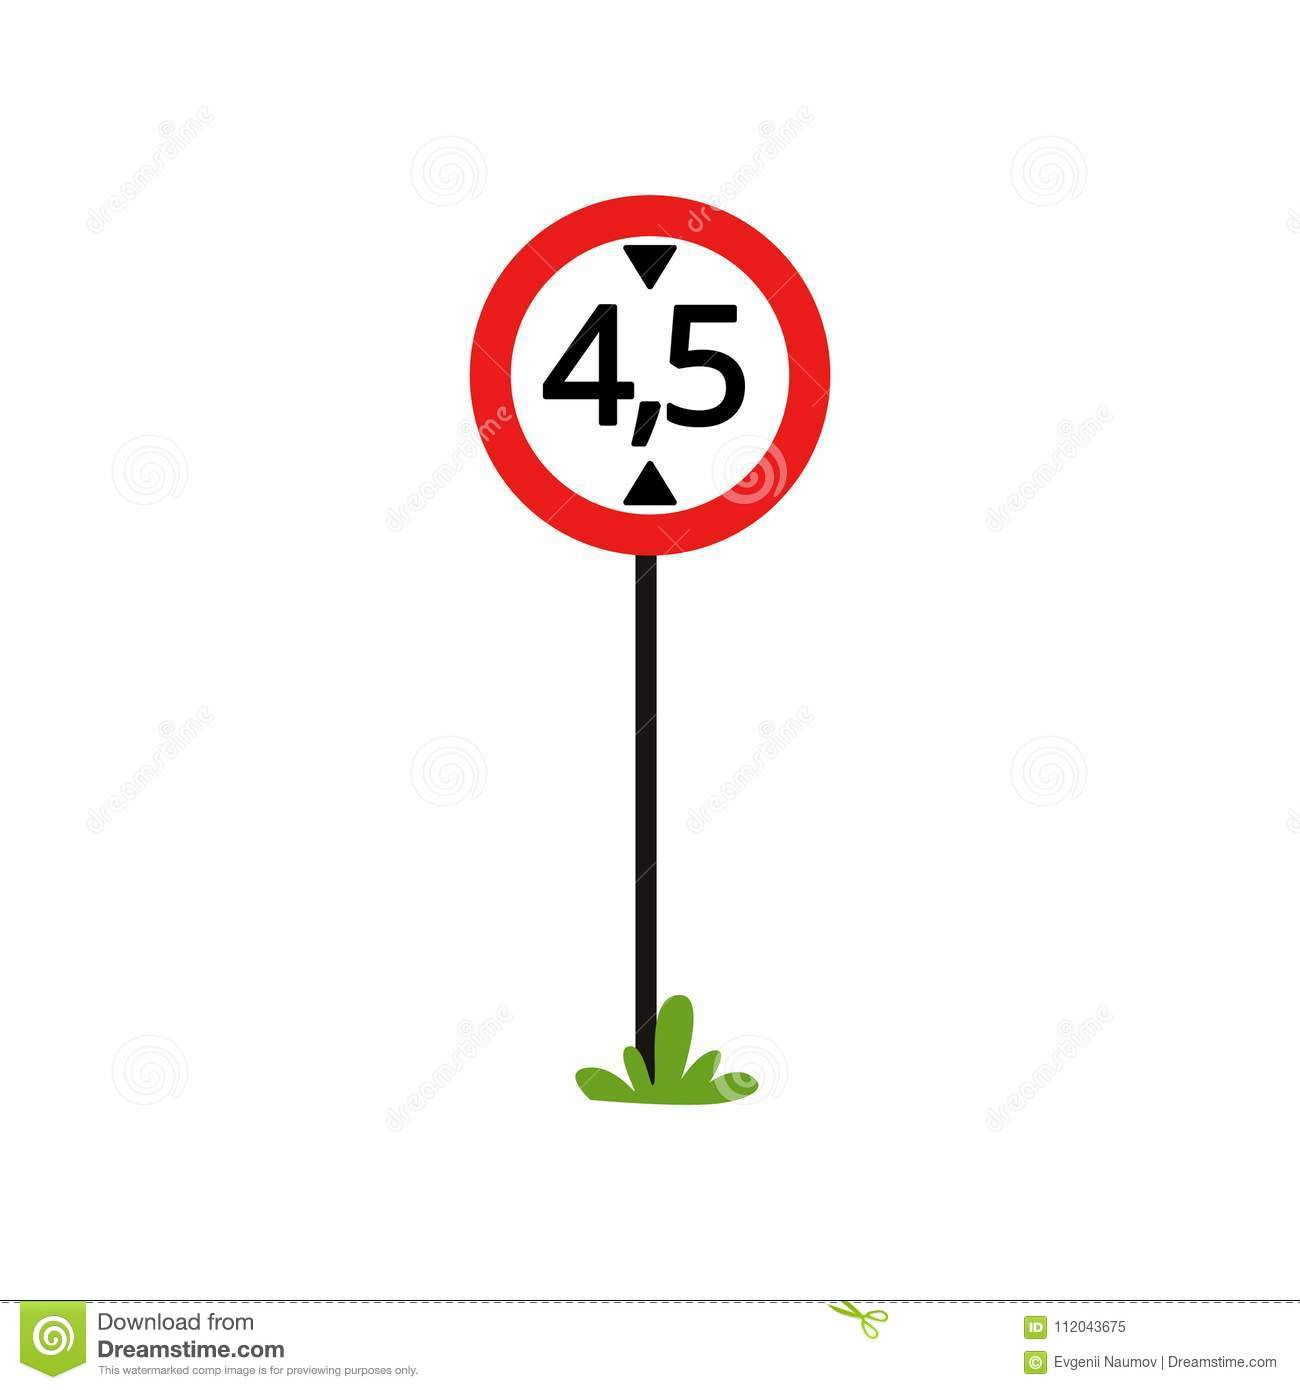 5 5 In Meters Prohibition Sign The Movement Of Vehicles Over 4 5 Meters In